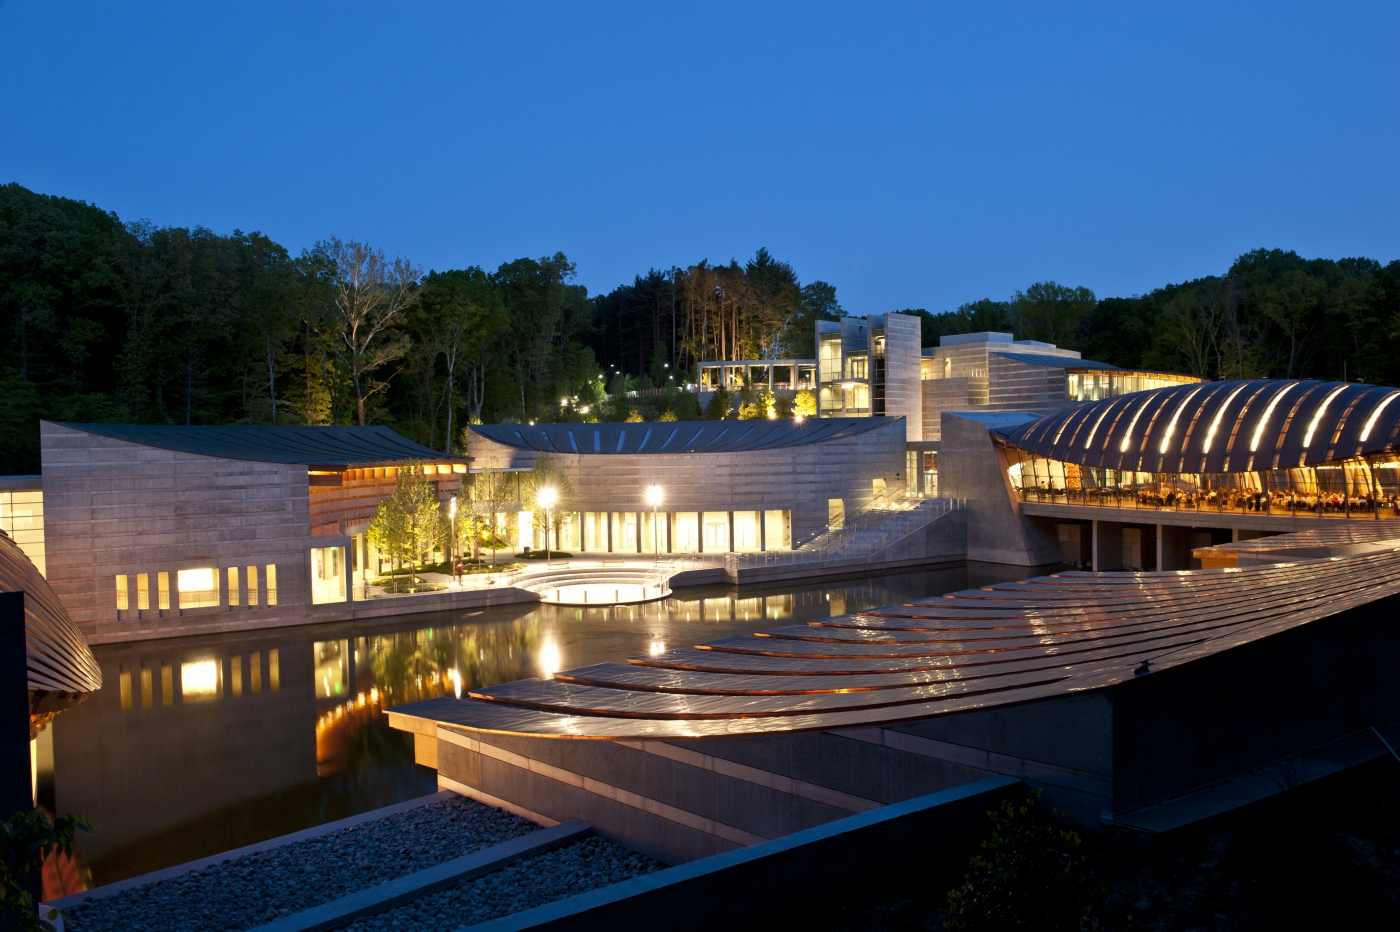 Crystal Bridges Museum of American Art - Bentonville, Arkansas